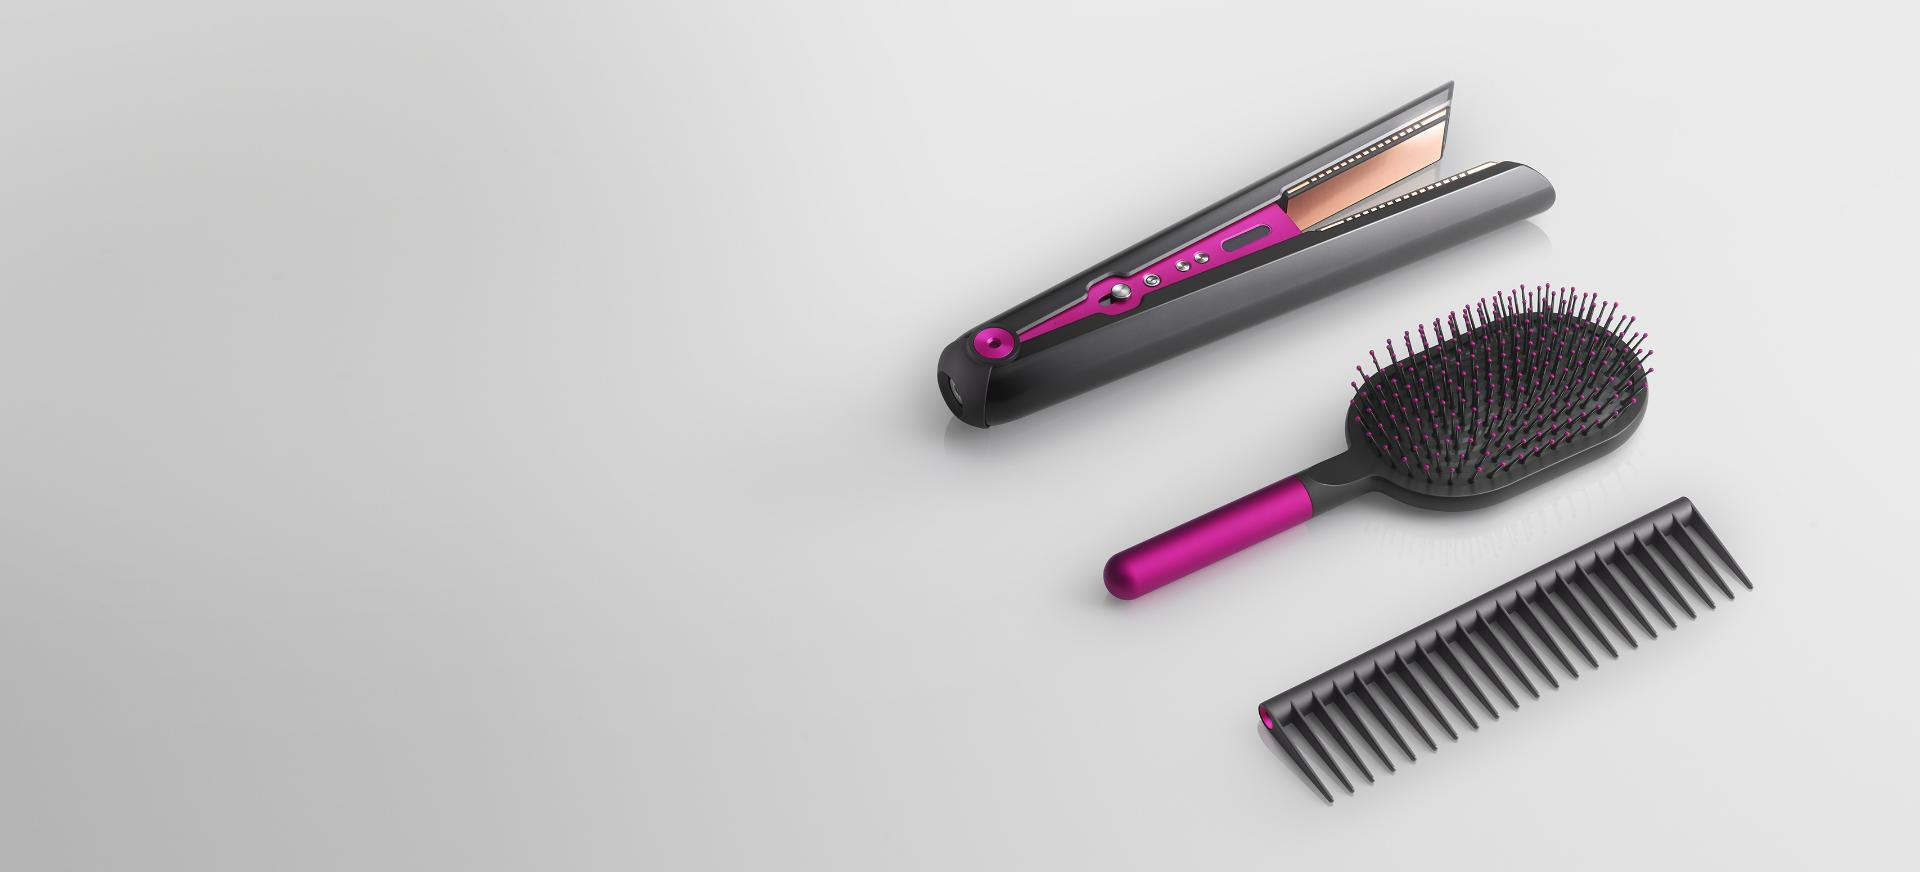 Dyson Corrale straightener with Paddle brush and Detangling comb